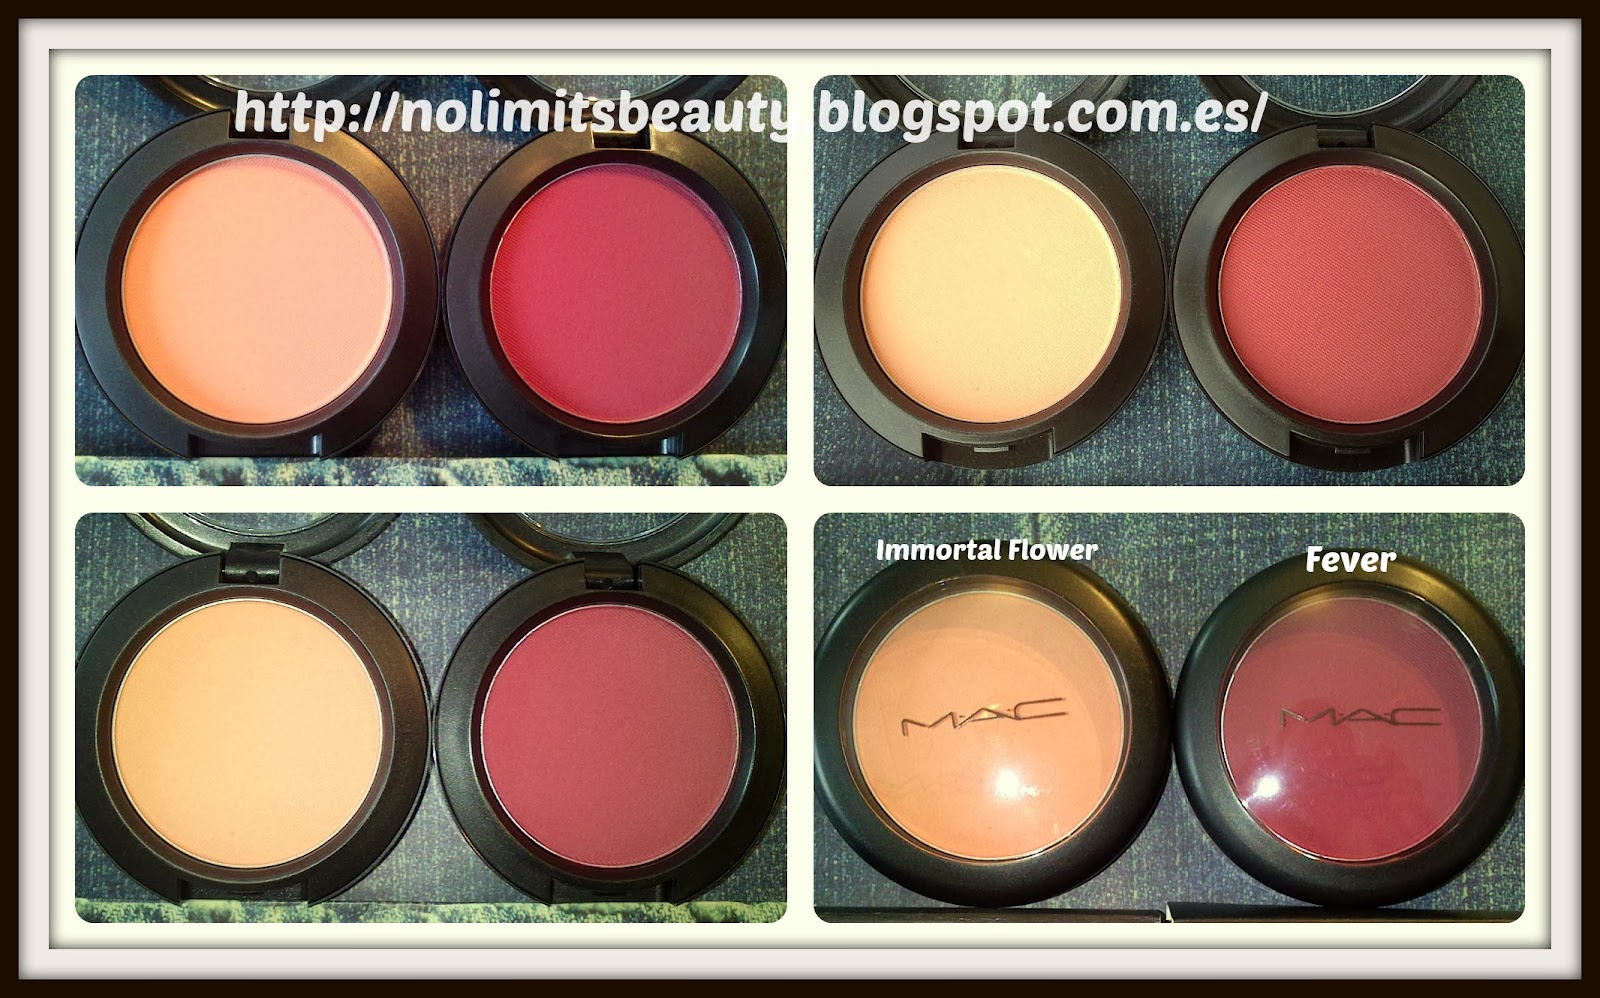 Immortal Flower & Fever Blush de MAC